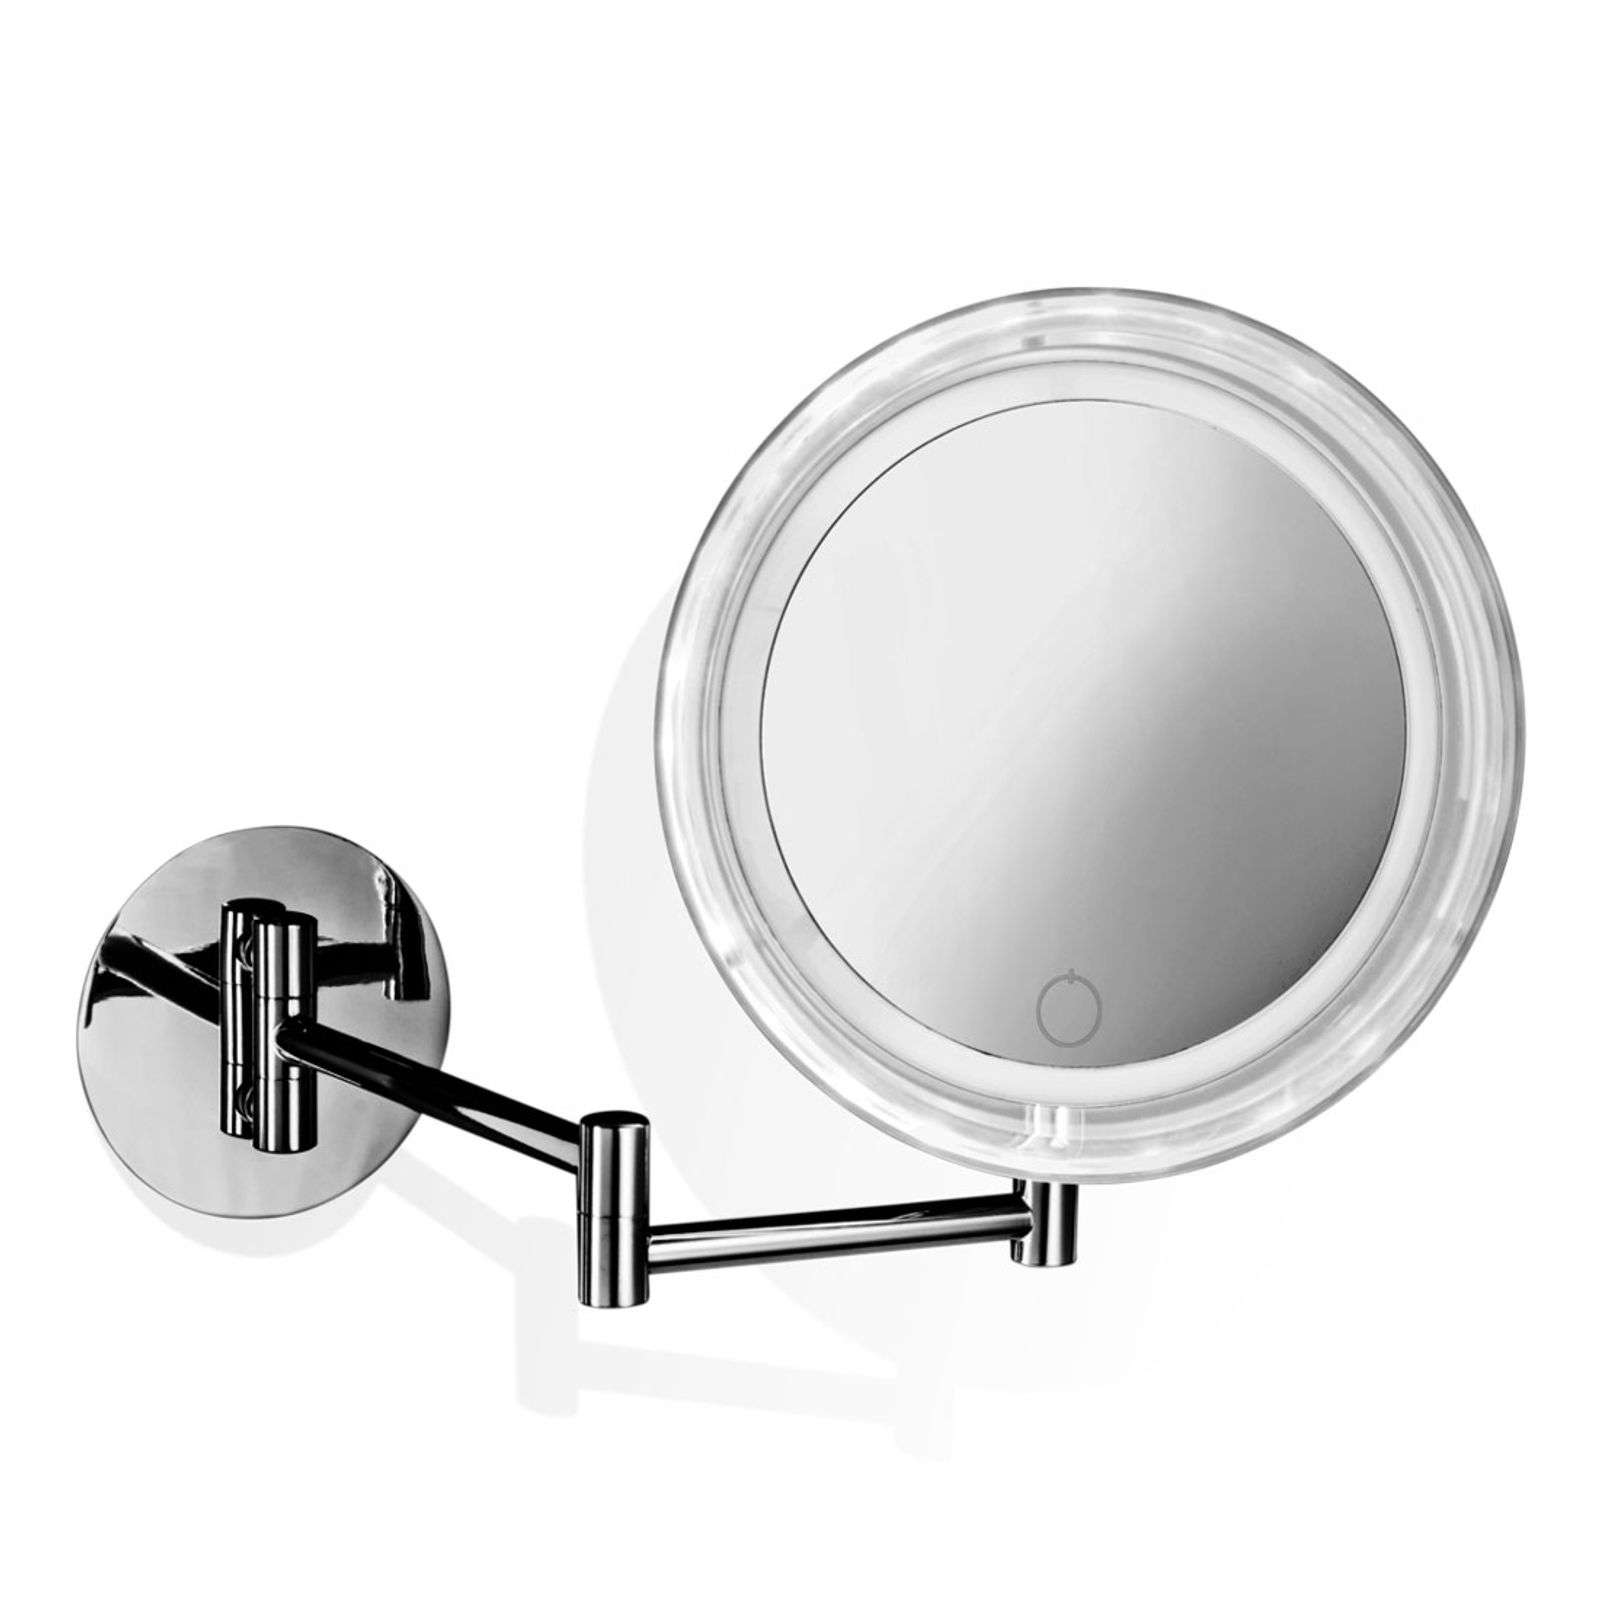 Decor Walther BS 17 Touch miroir mural LED rond